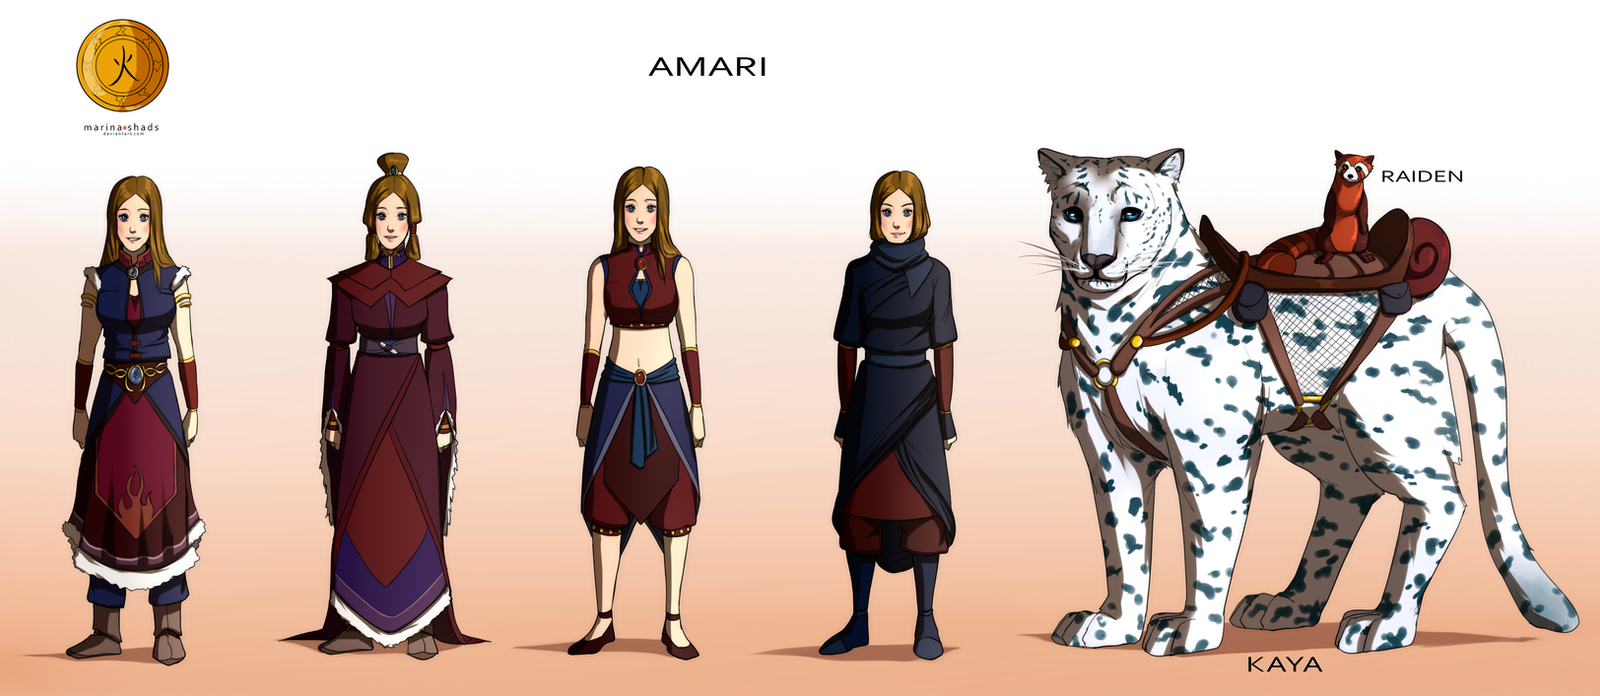 Top 40 Character Design Tips : Commission amari character concept design by marina